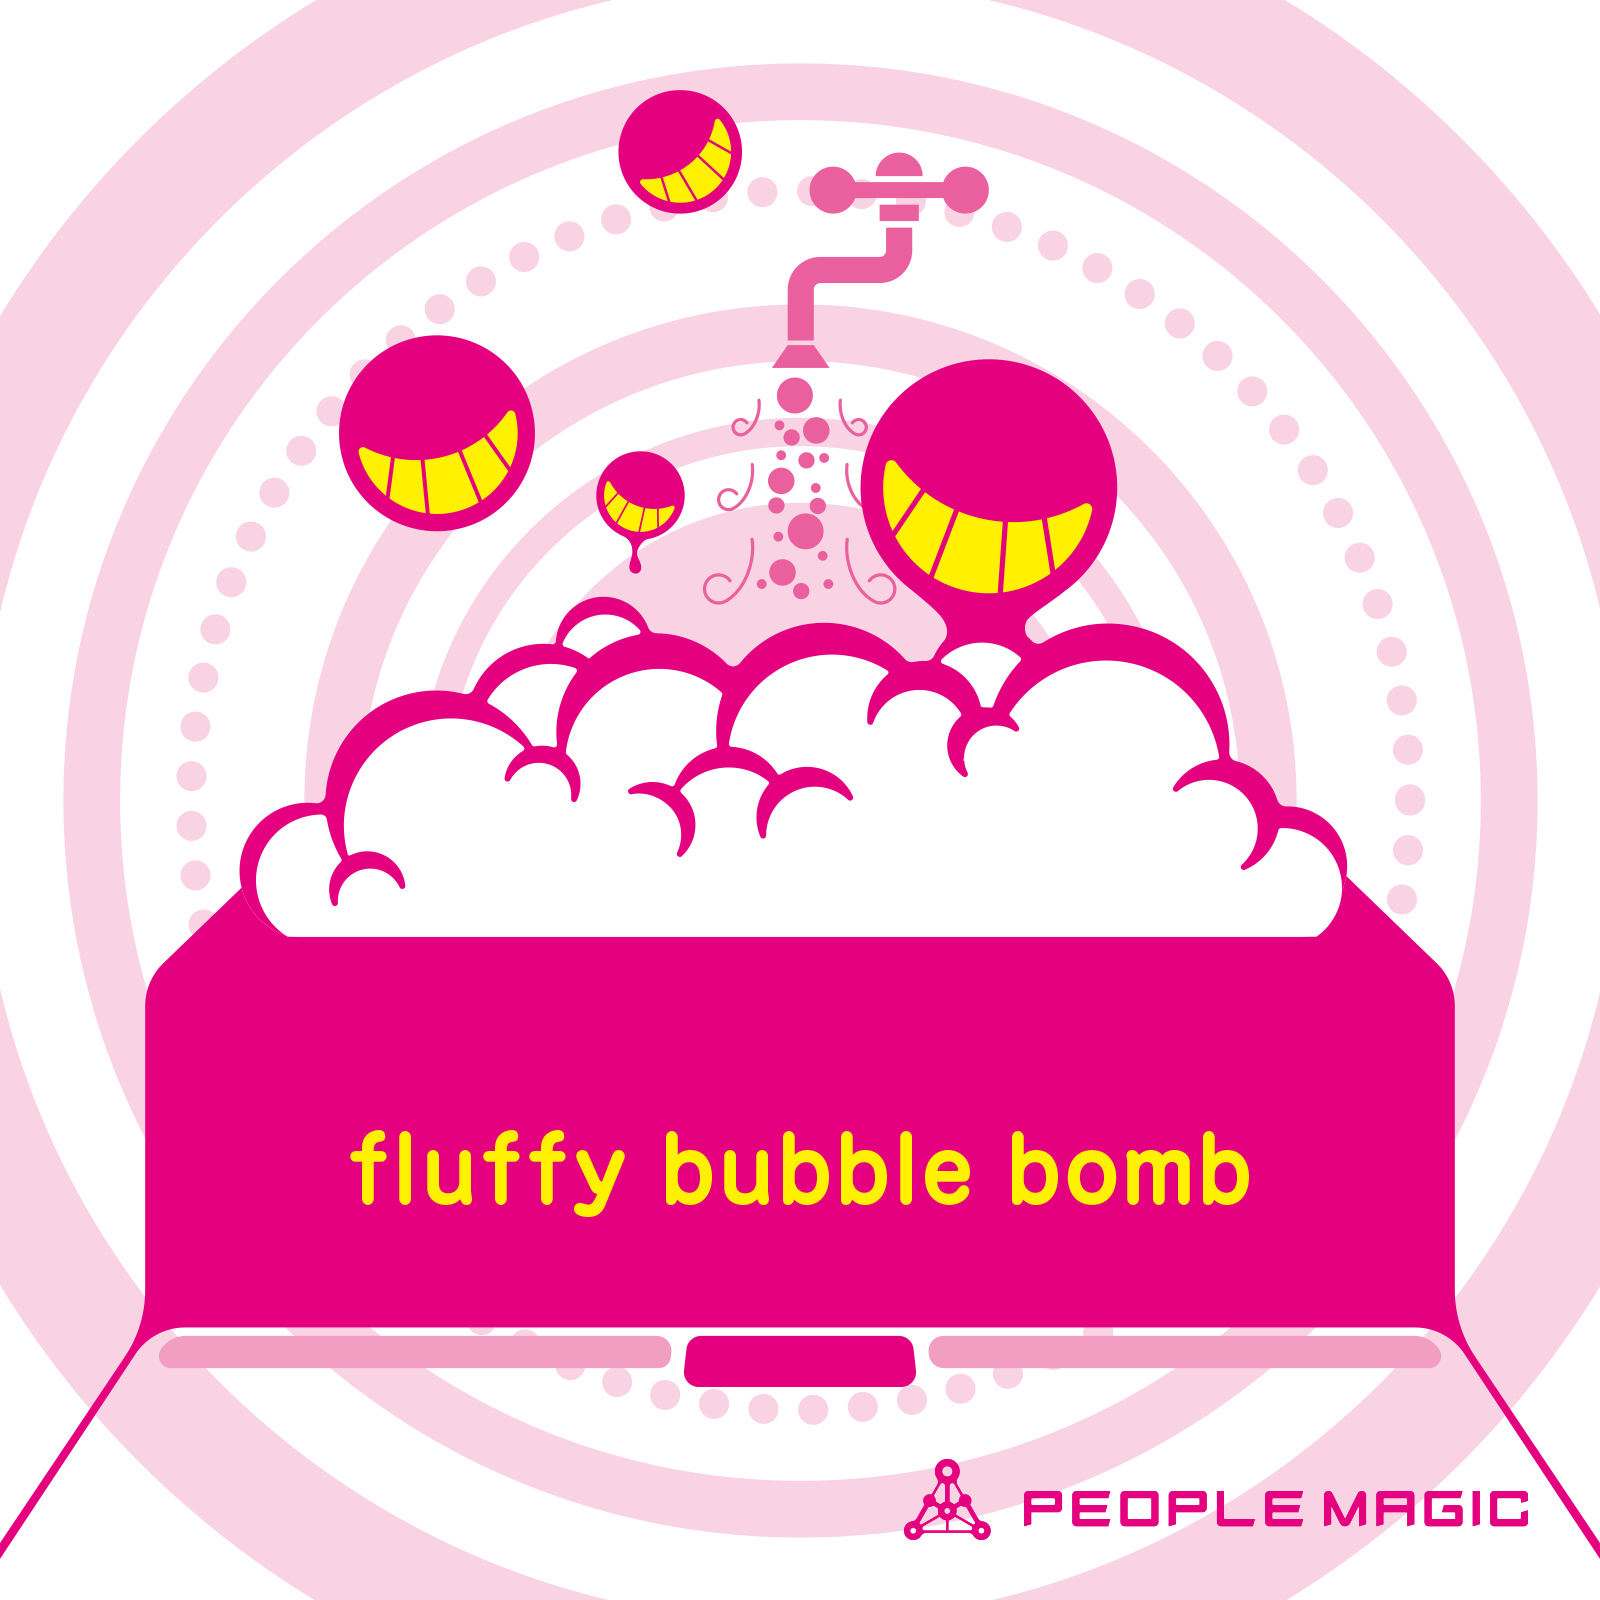 fluffy bubble bomb